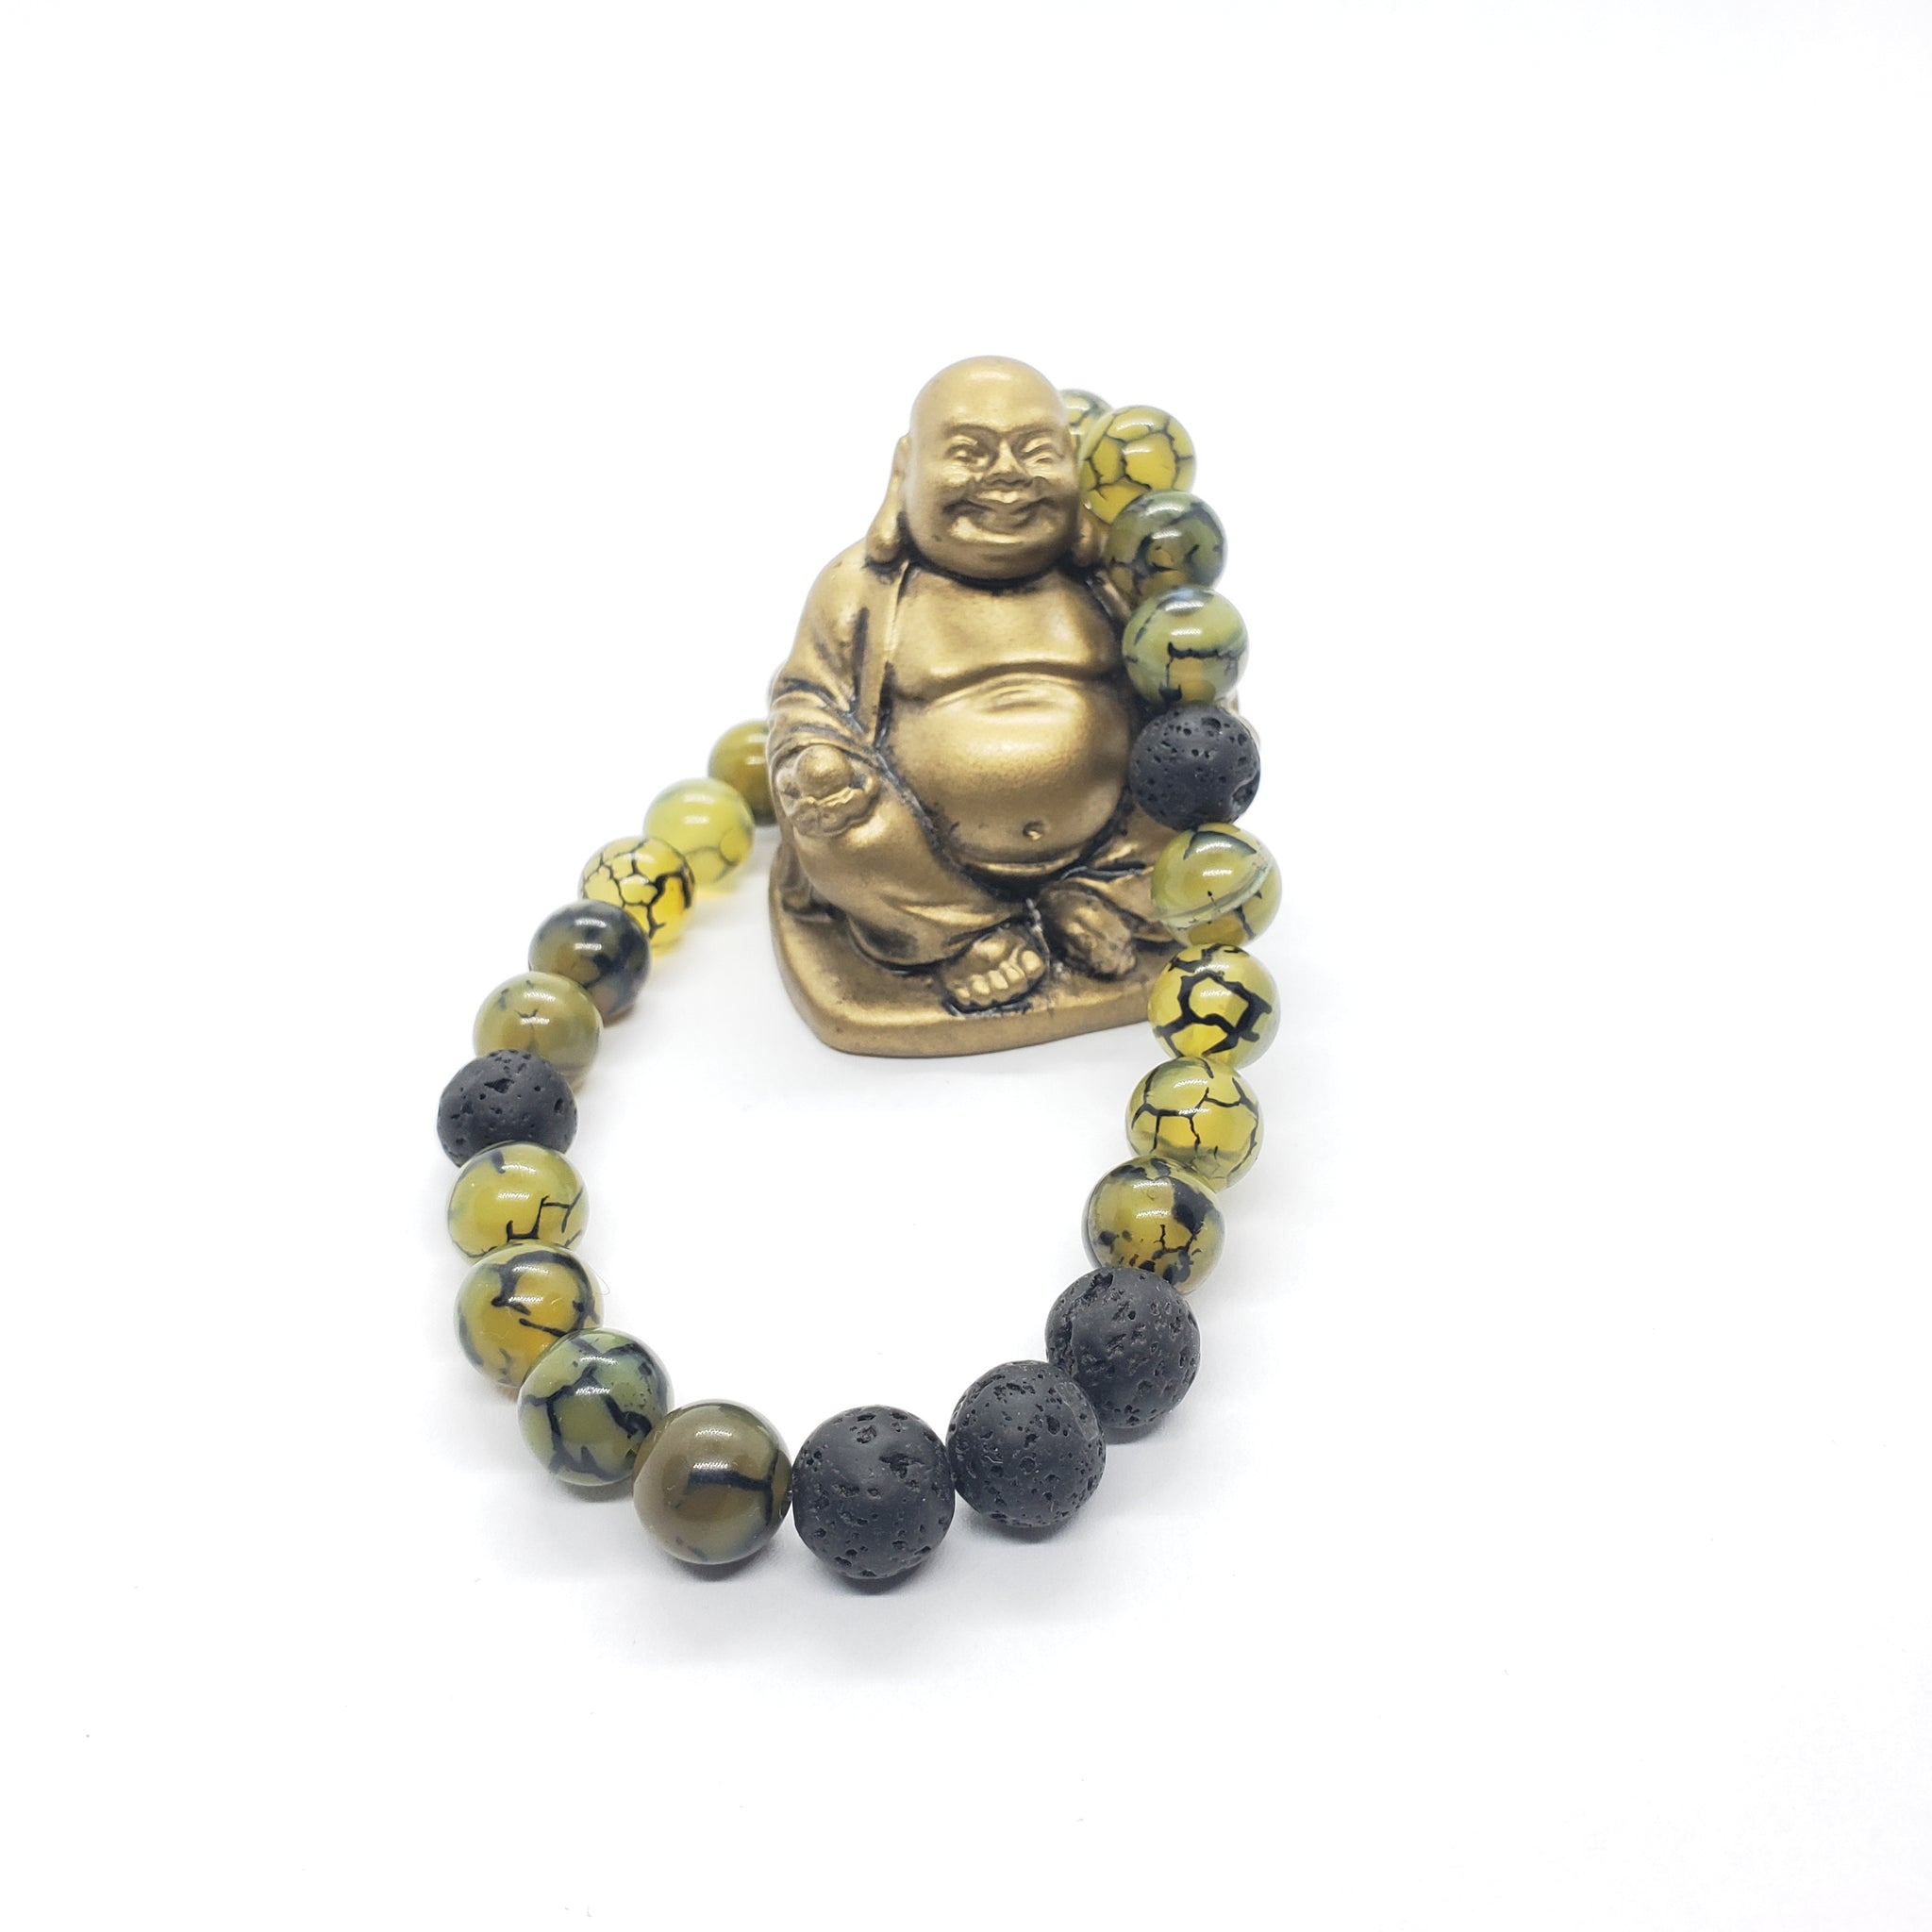 Le Bracelet Dragon Bracelet Mala Force - Protection - Nohprec Experience